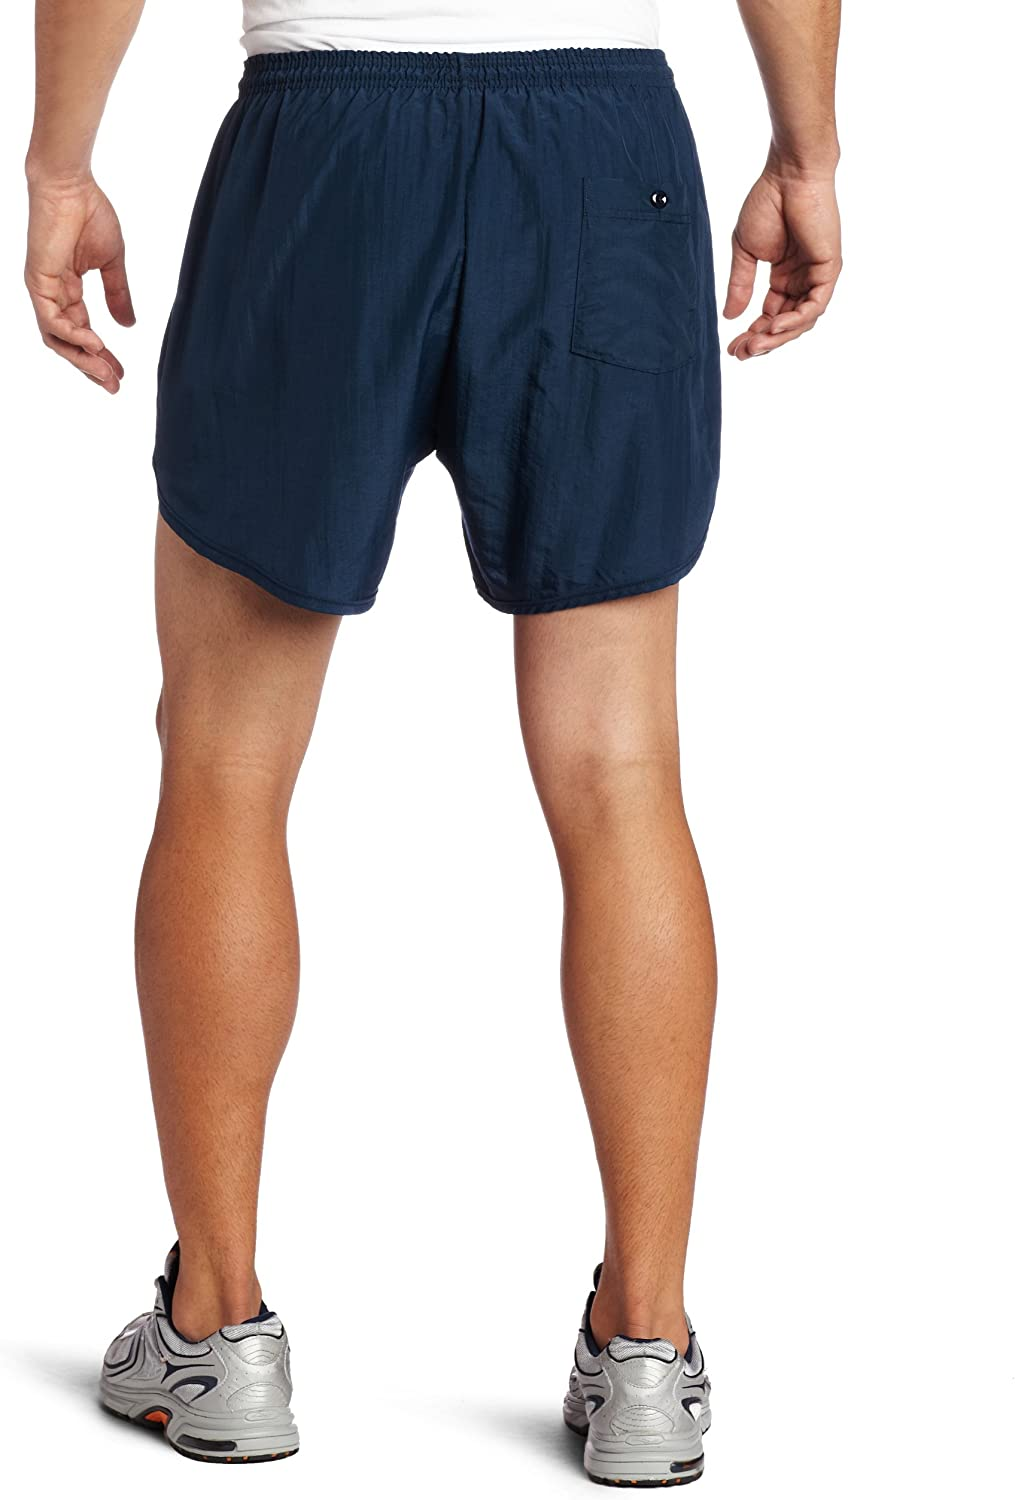 Soffe Men's Dri Running Shorts: Clothing